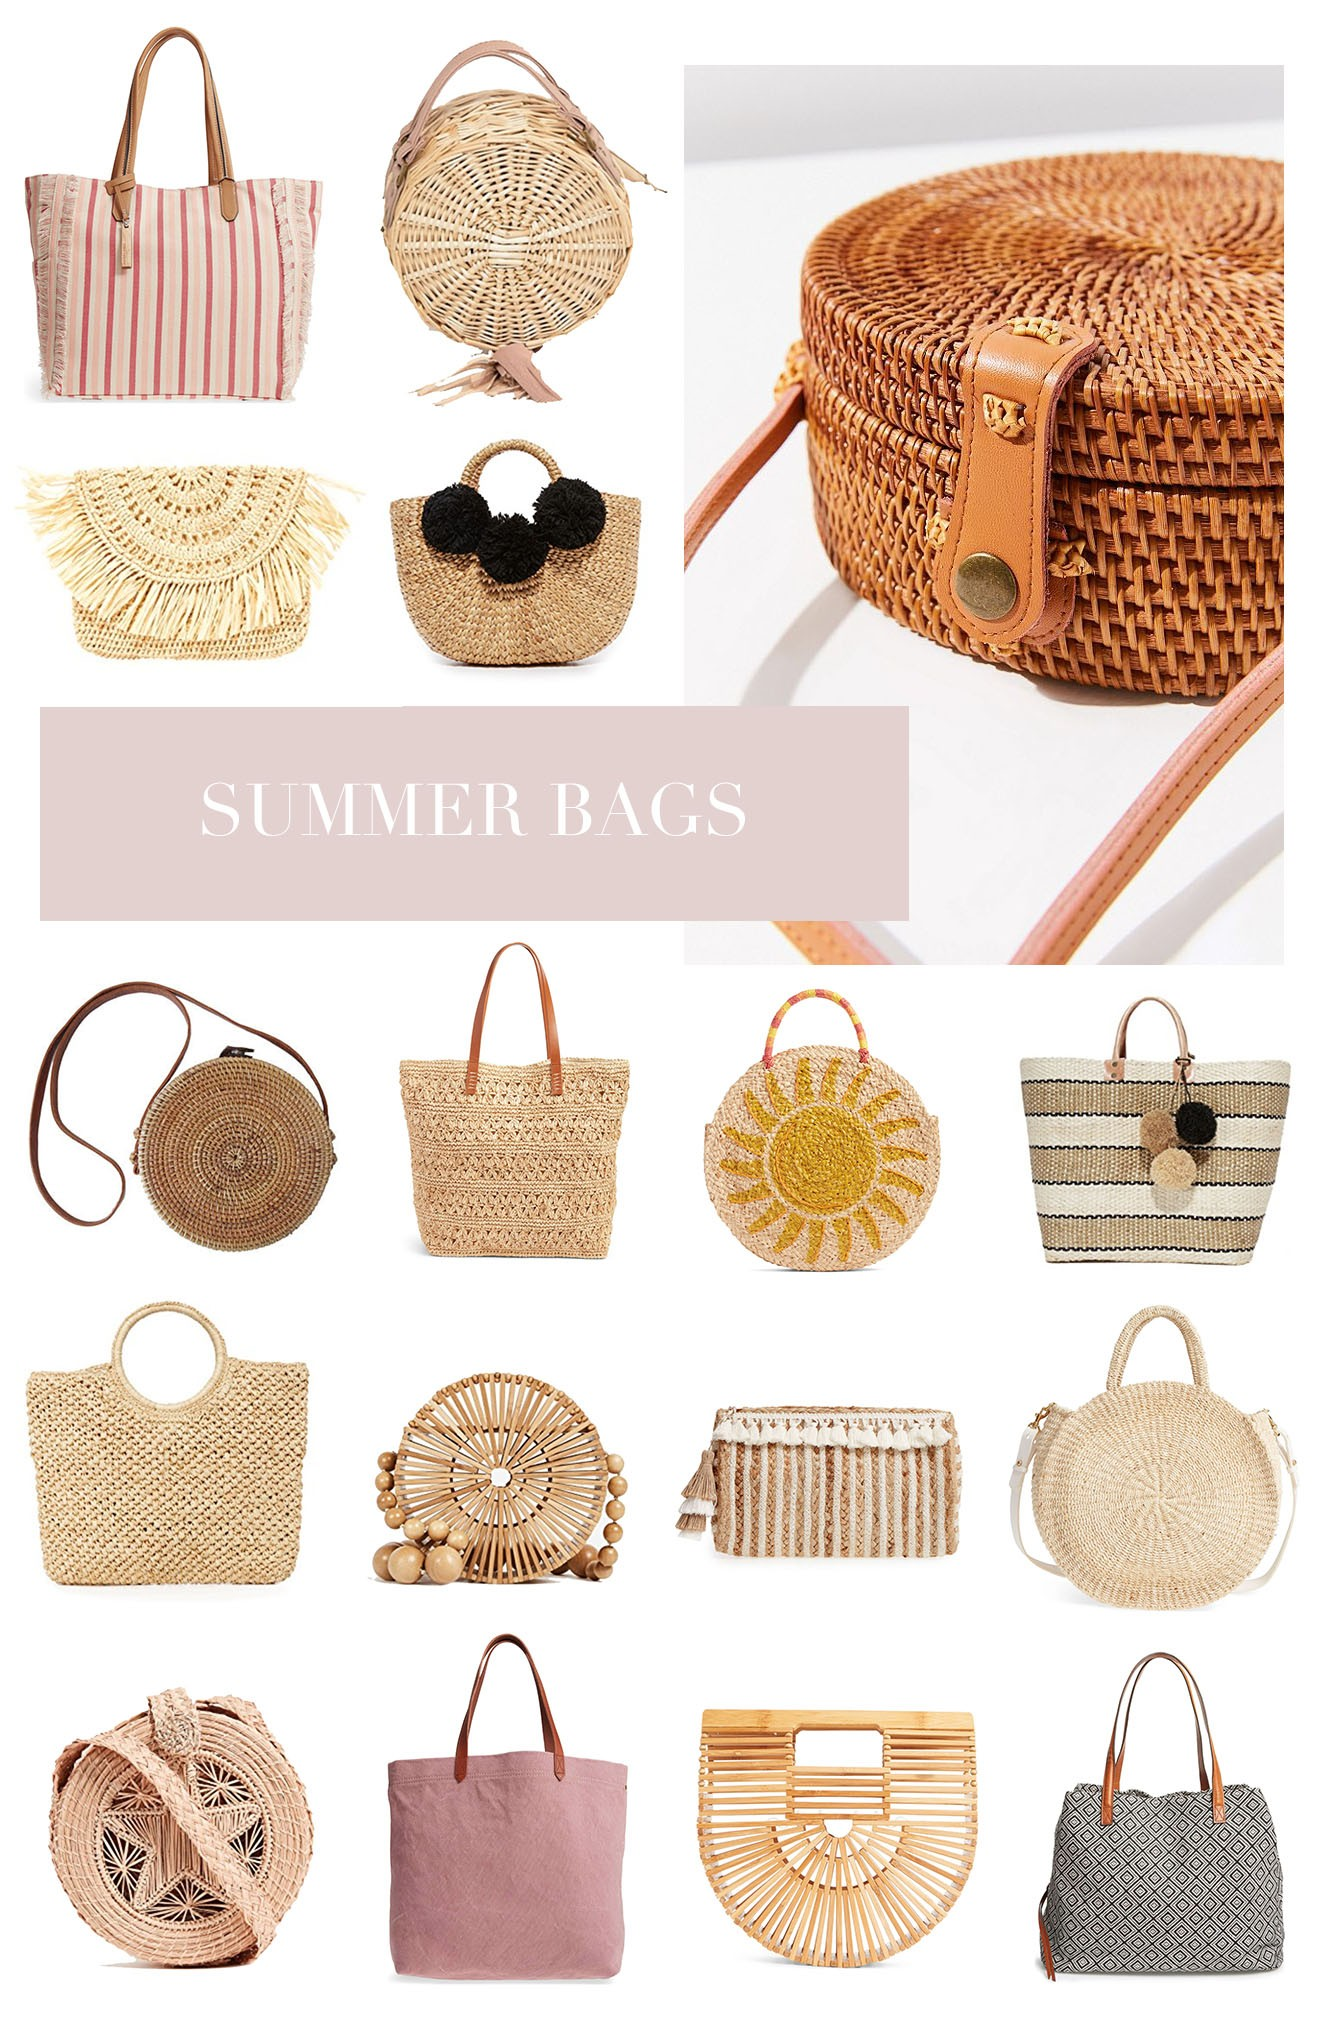 Below Are Some Other Beach Bags I M Eyeing Most Of Them Affordable Under 50 But A Few Bit Splurge They Were Just Too Cute Not To Share